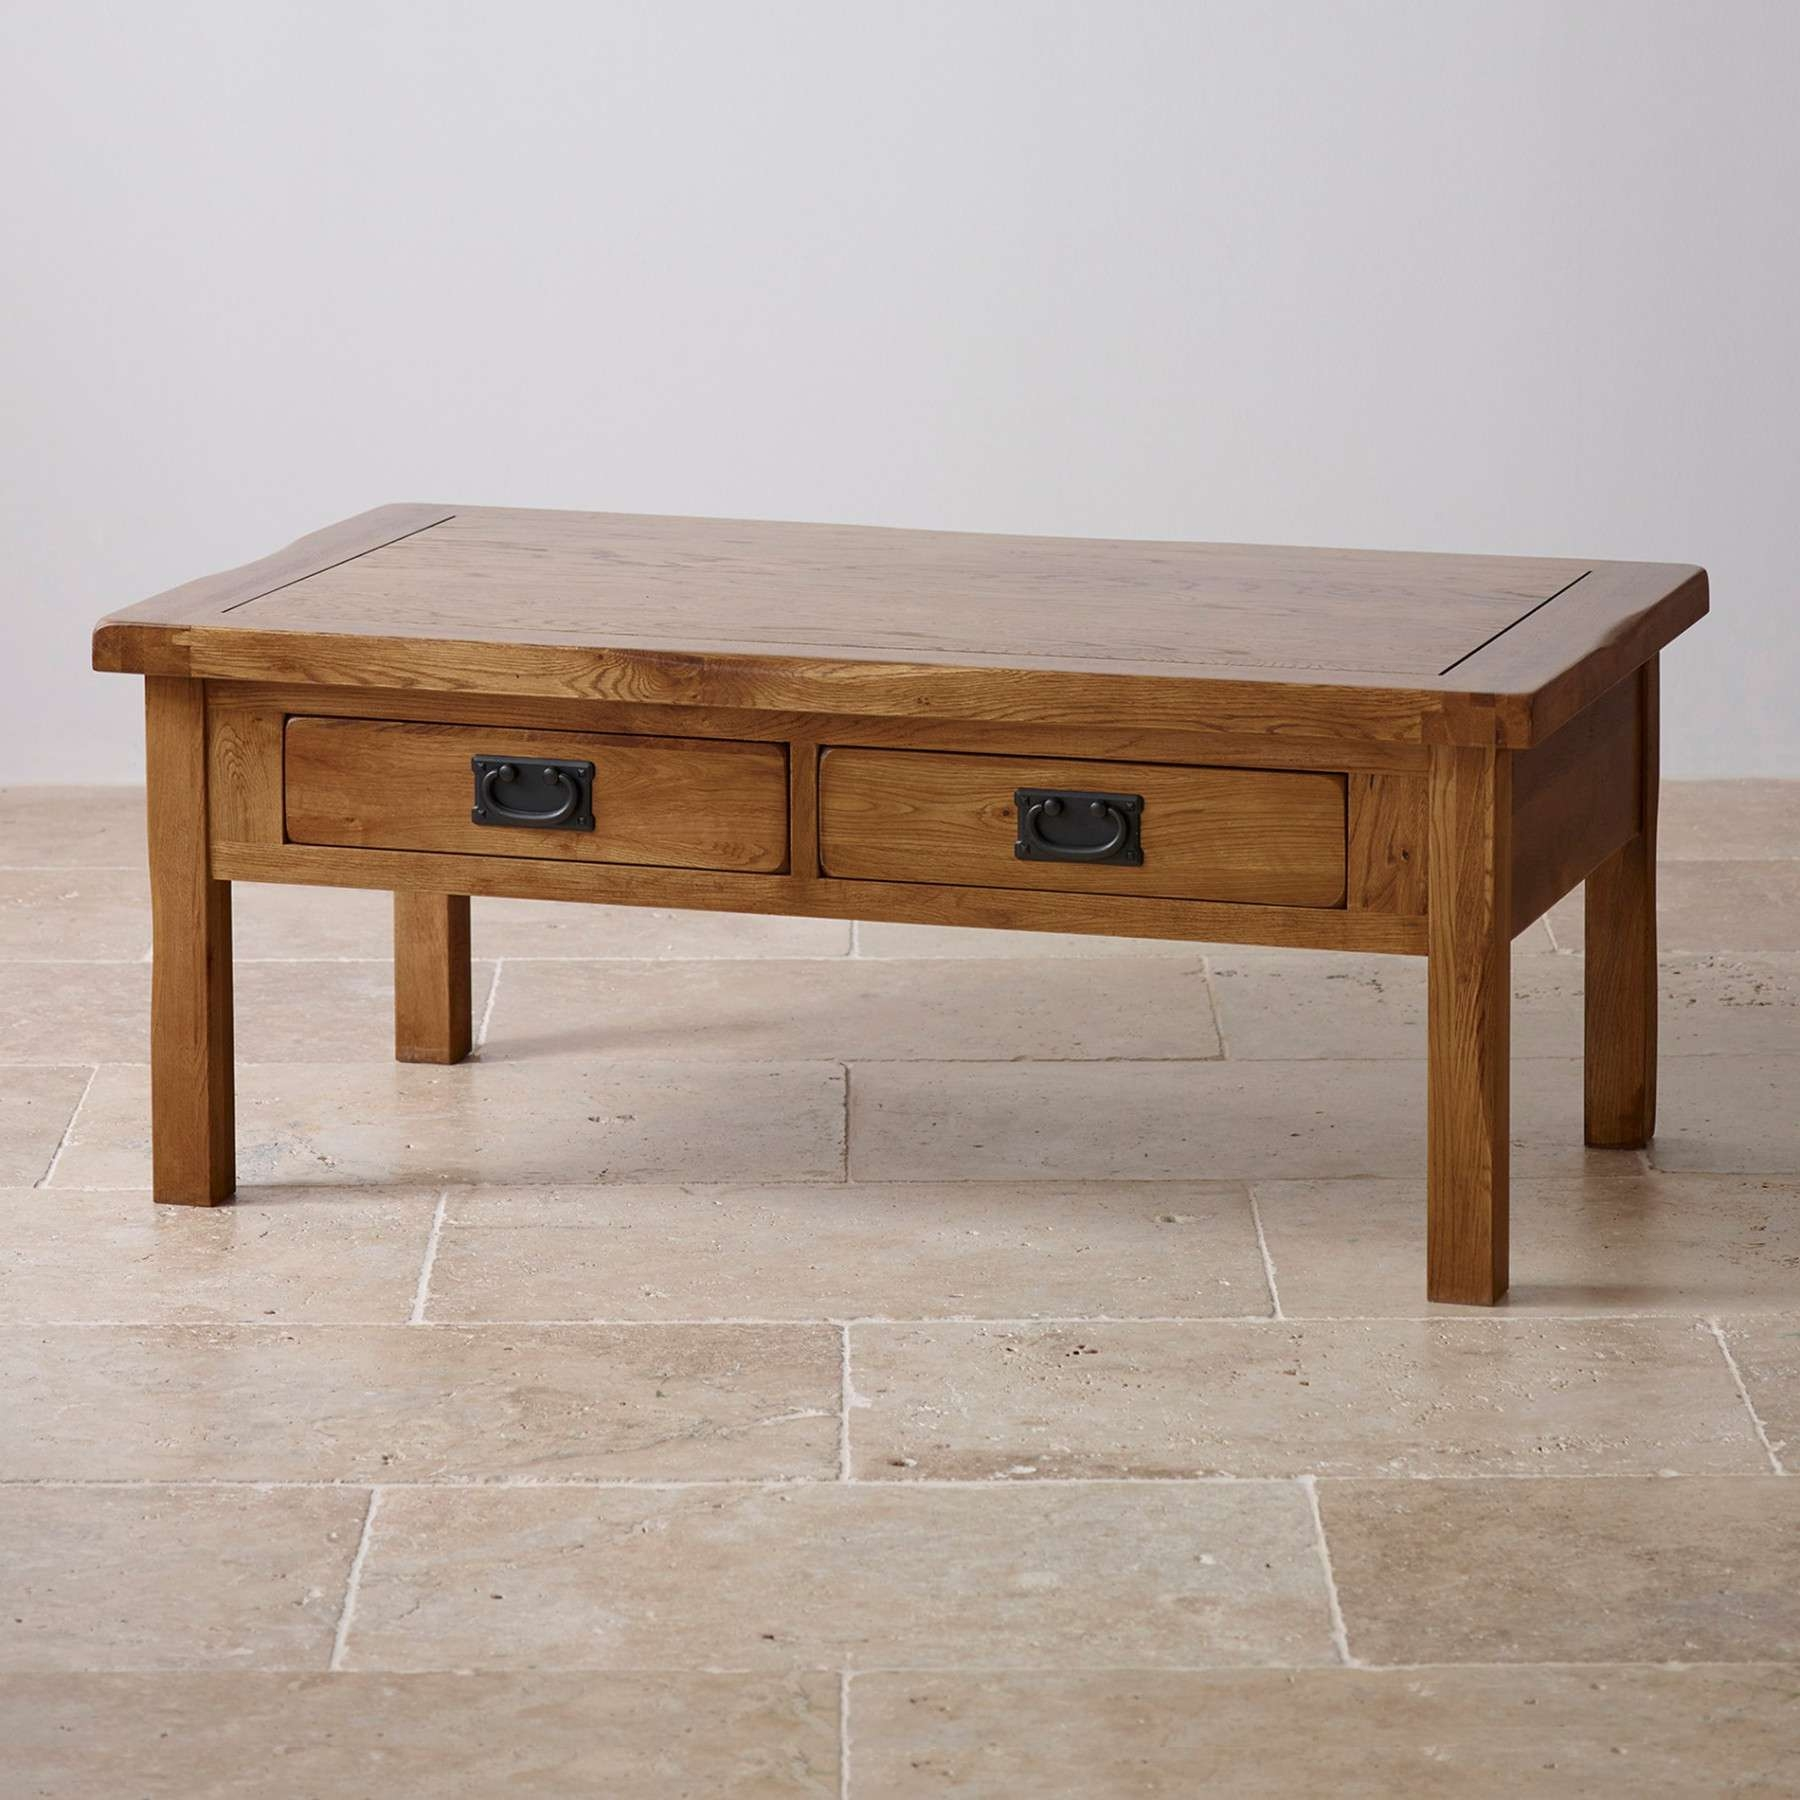 Oak Furniture Land Pertaining To Latest Oak Coffee Table Sets (View 18 of 20)